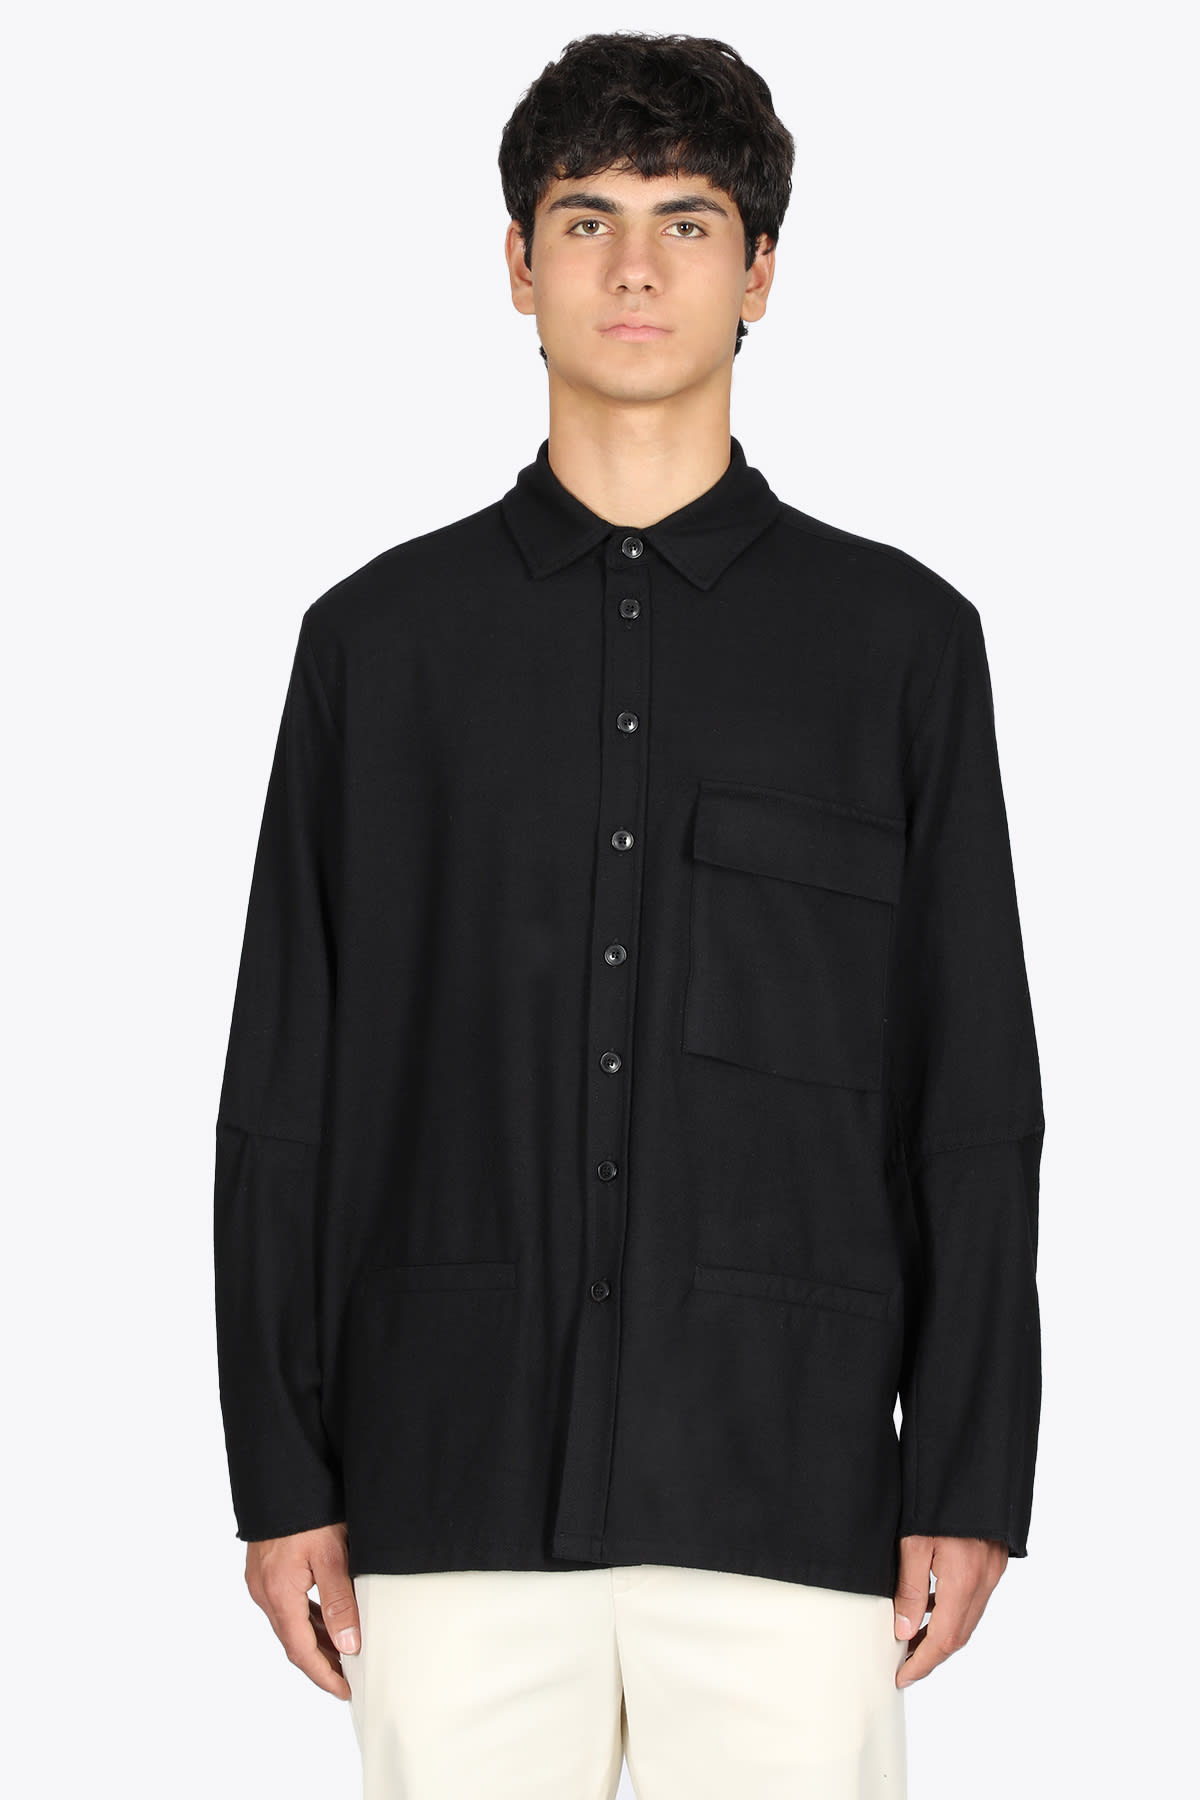 Black Wool Overshirt With Pockets